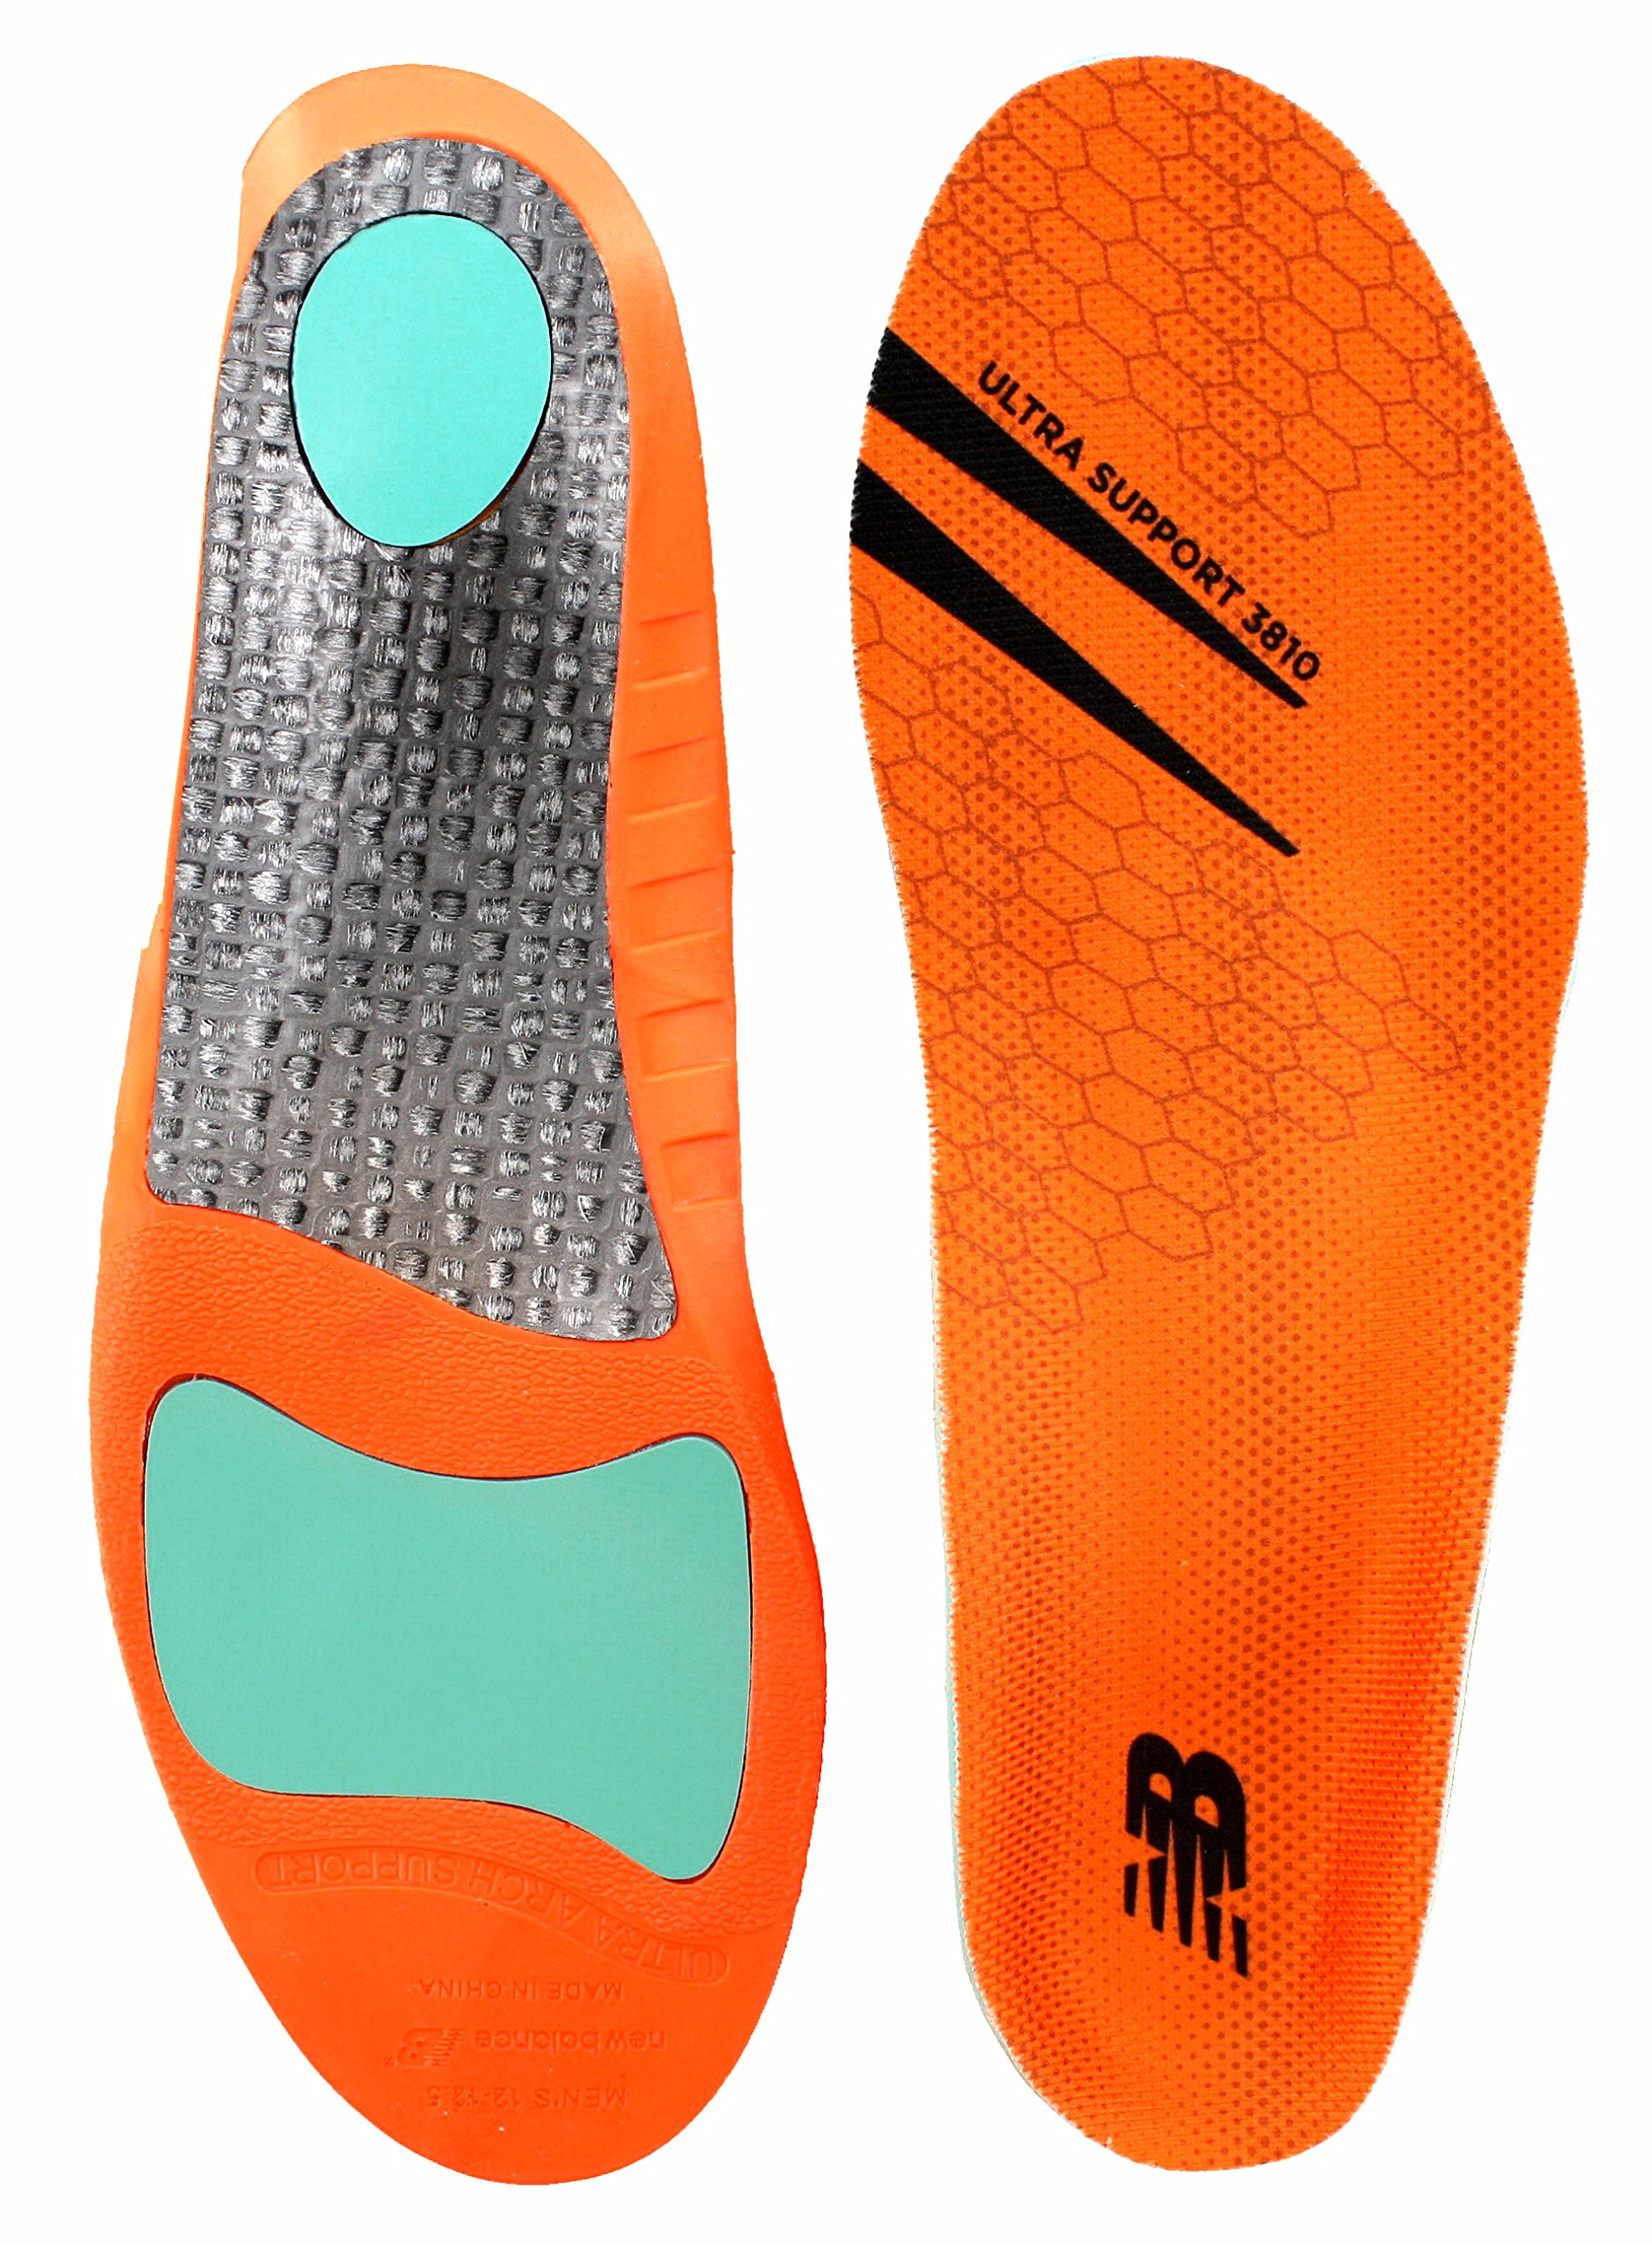 New Balance Insoles 3810 Ultra Support Insole Shoe, orange, 11.5-12 W US Women / 10-10.5 M US Men by New Balance